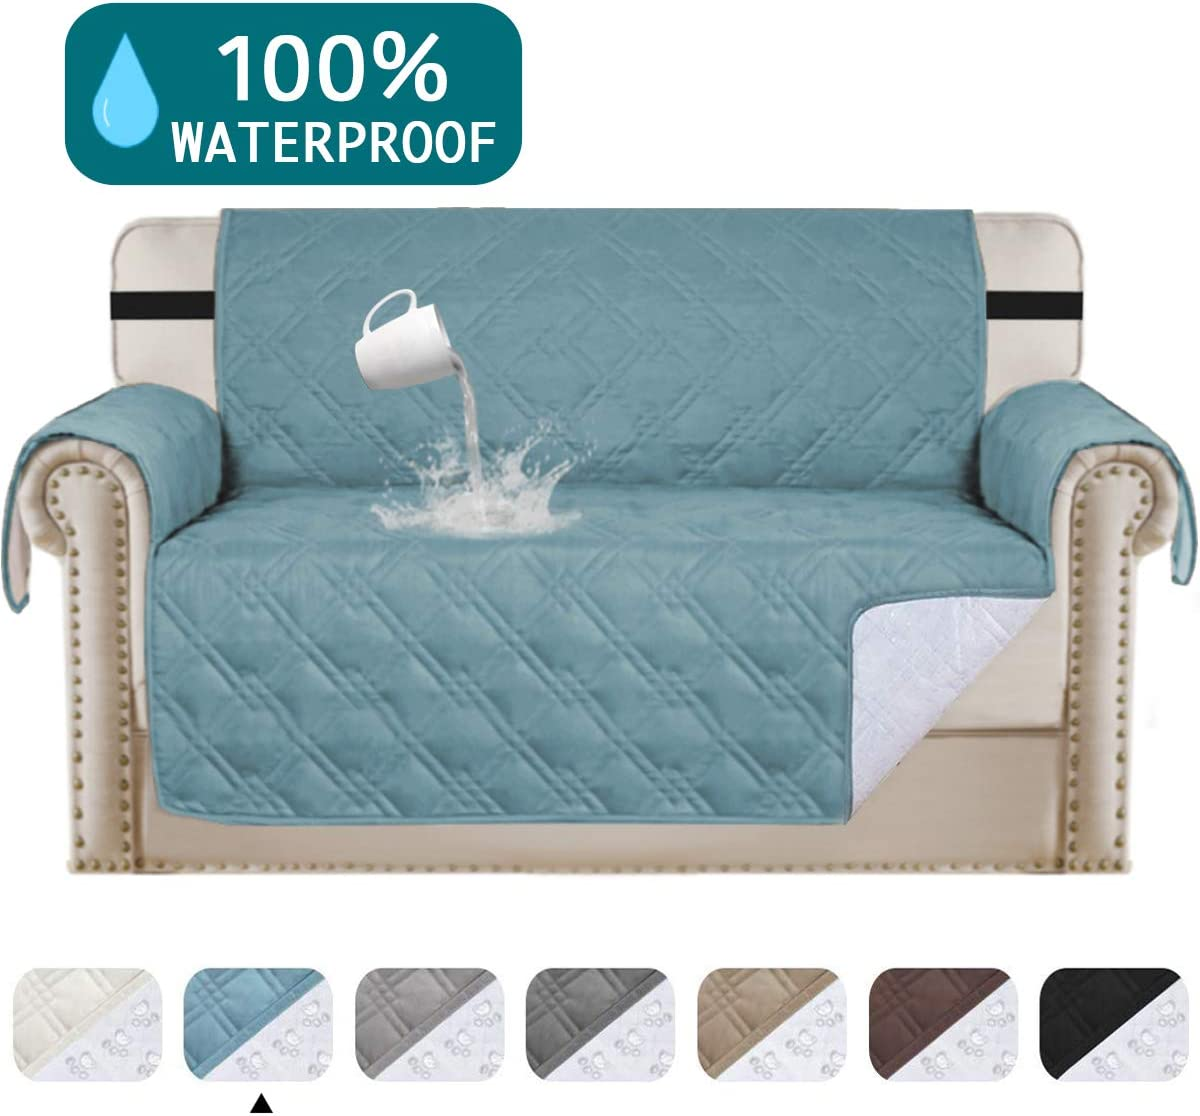 Amazon Com 100 Waterproof Loveseat Cover For Leather Couch Quilted Furniture Protector Stay In Place Strapless Couch Cover Prevent Stains Couch Protector For Dogs Pet Couch Covers Loveseat 54 Blue Furniture Decor